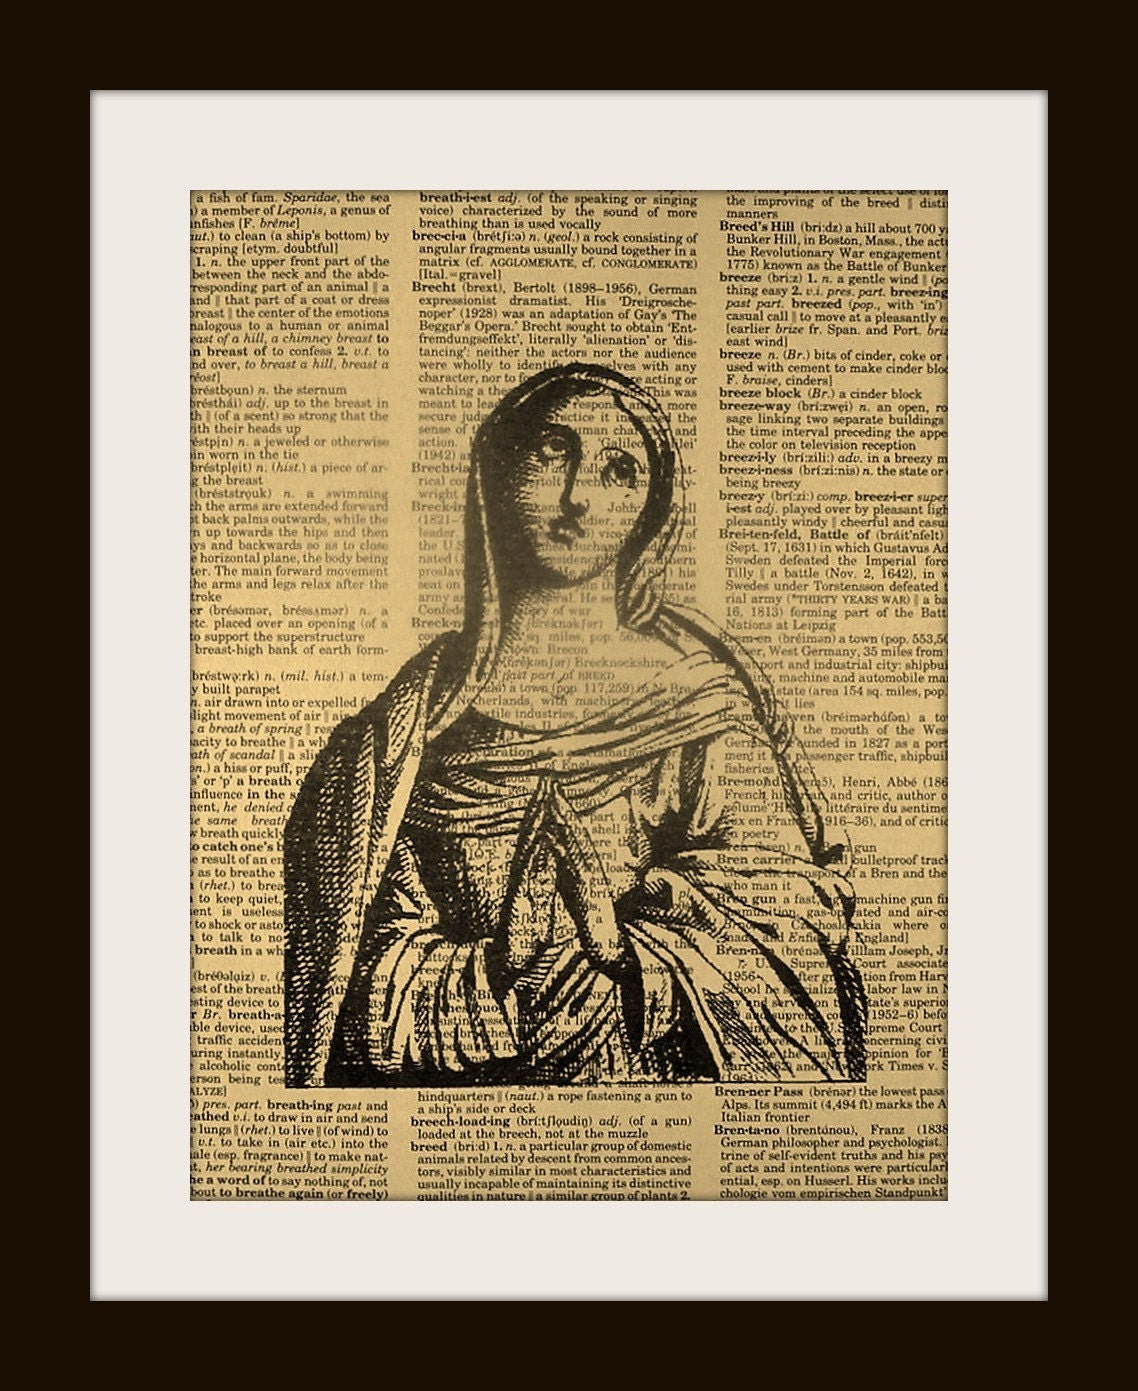 MARY OUR LADY Print on Vintage Dictionary Page FREE SHIPPING WORLDWIDE